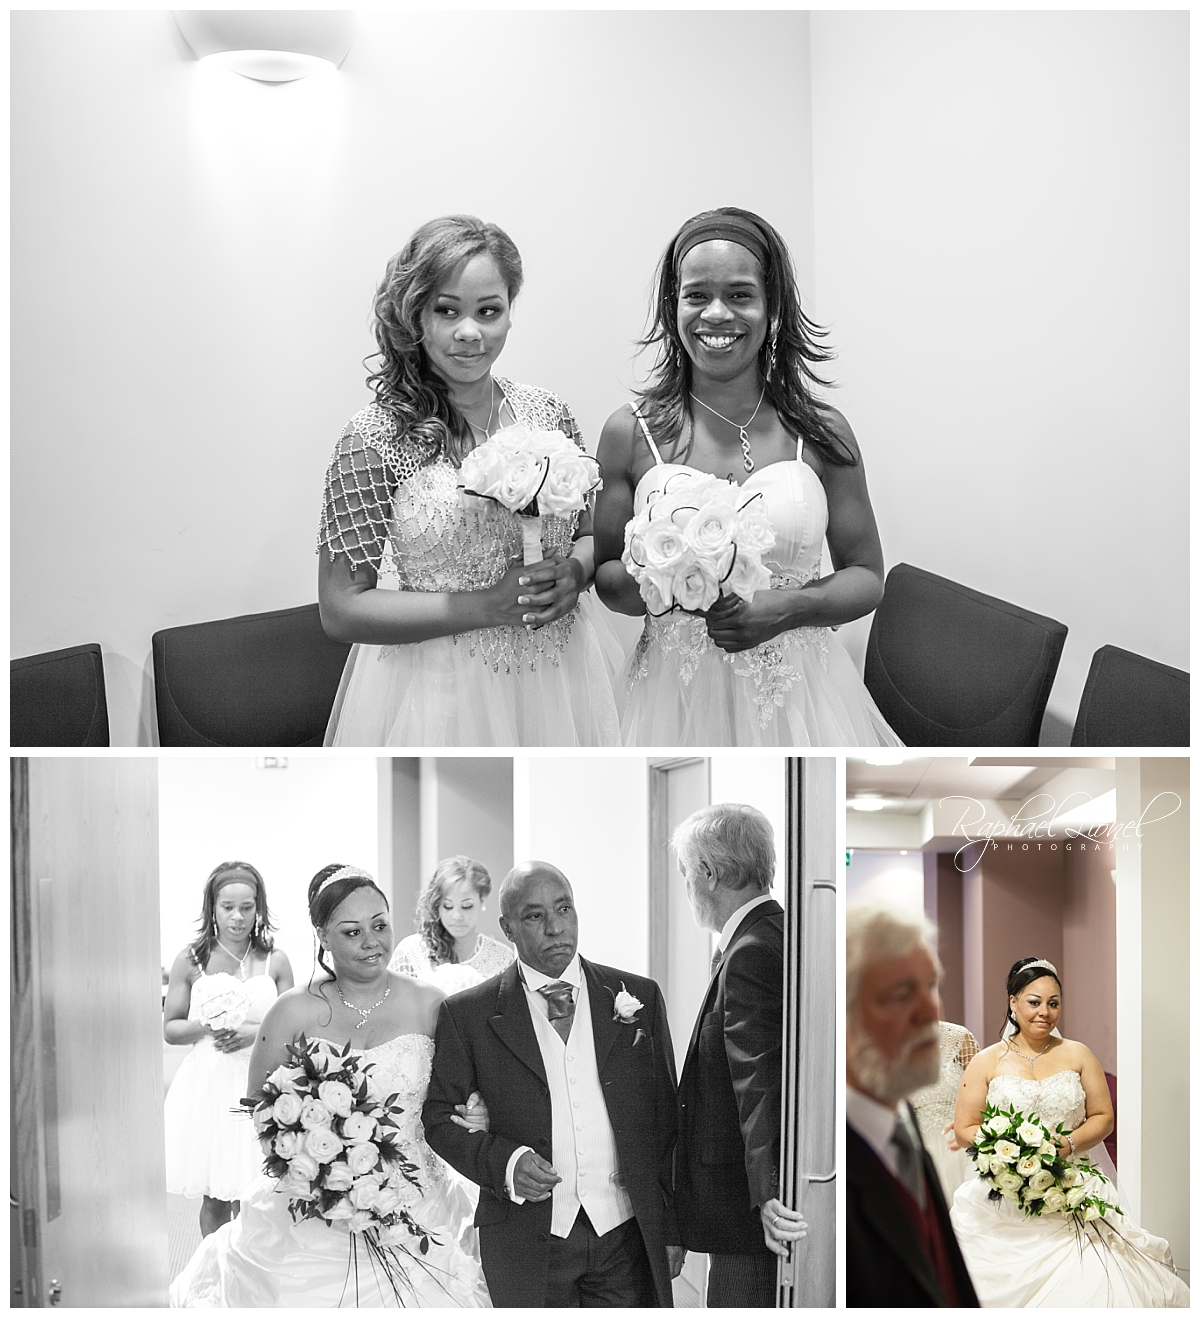 2018 04 08 0009 - City Wedding Birmingham | Dauntley and Simone